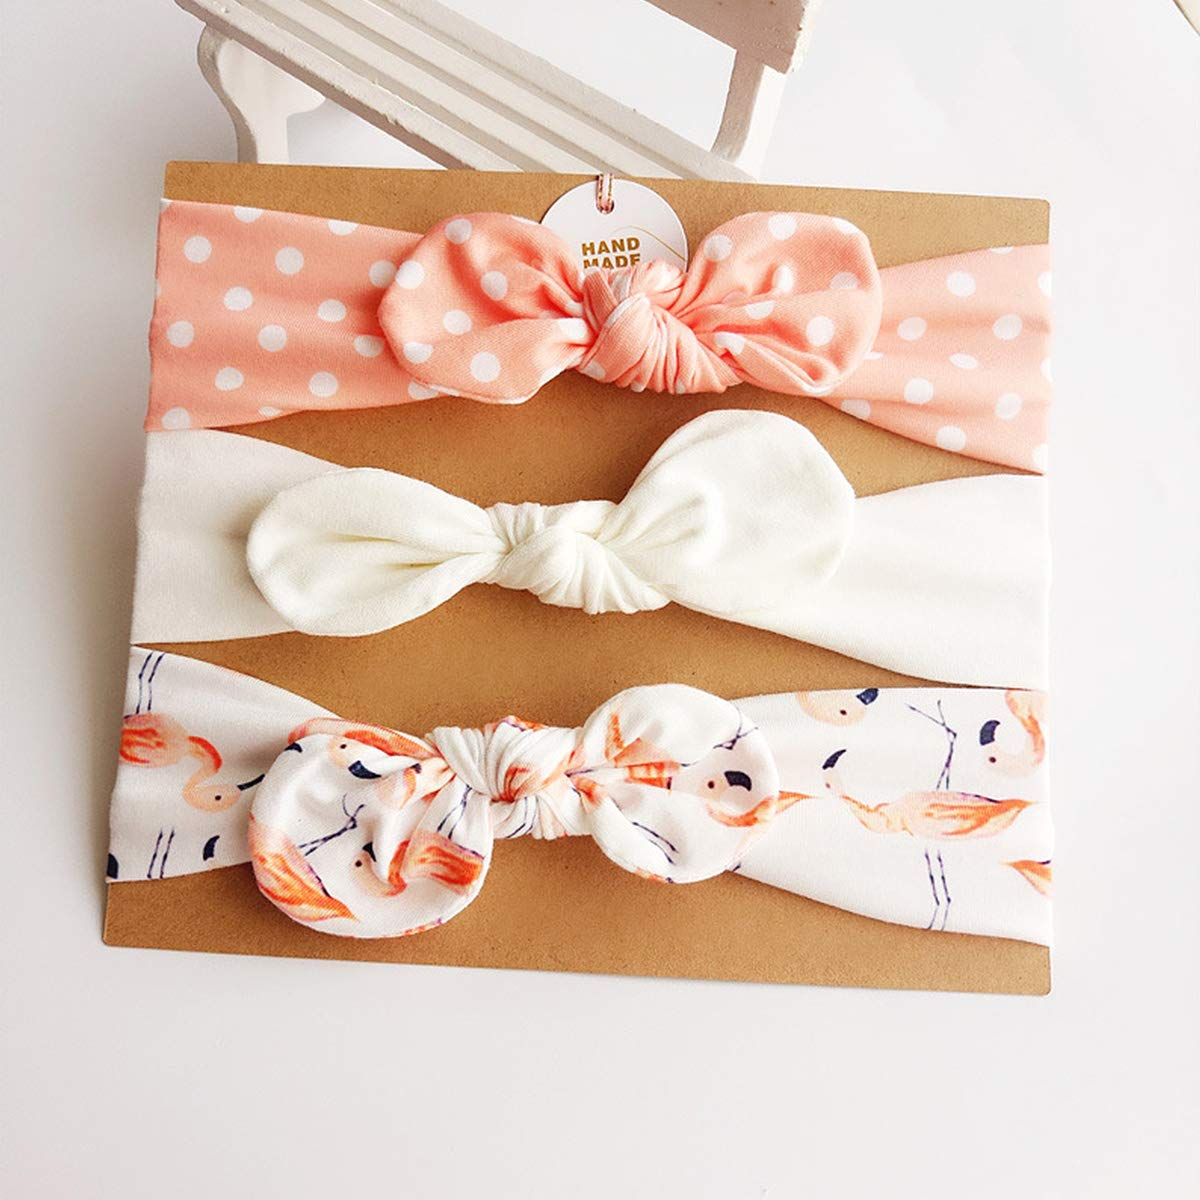 Elastic Turban Bow-knot Hairband Accessory for Newborn Toddlers Babies Kissral 3 PCS Baby Girl Hairband